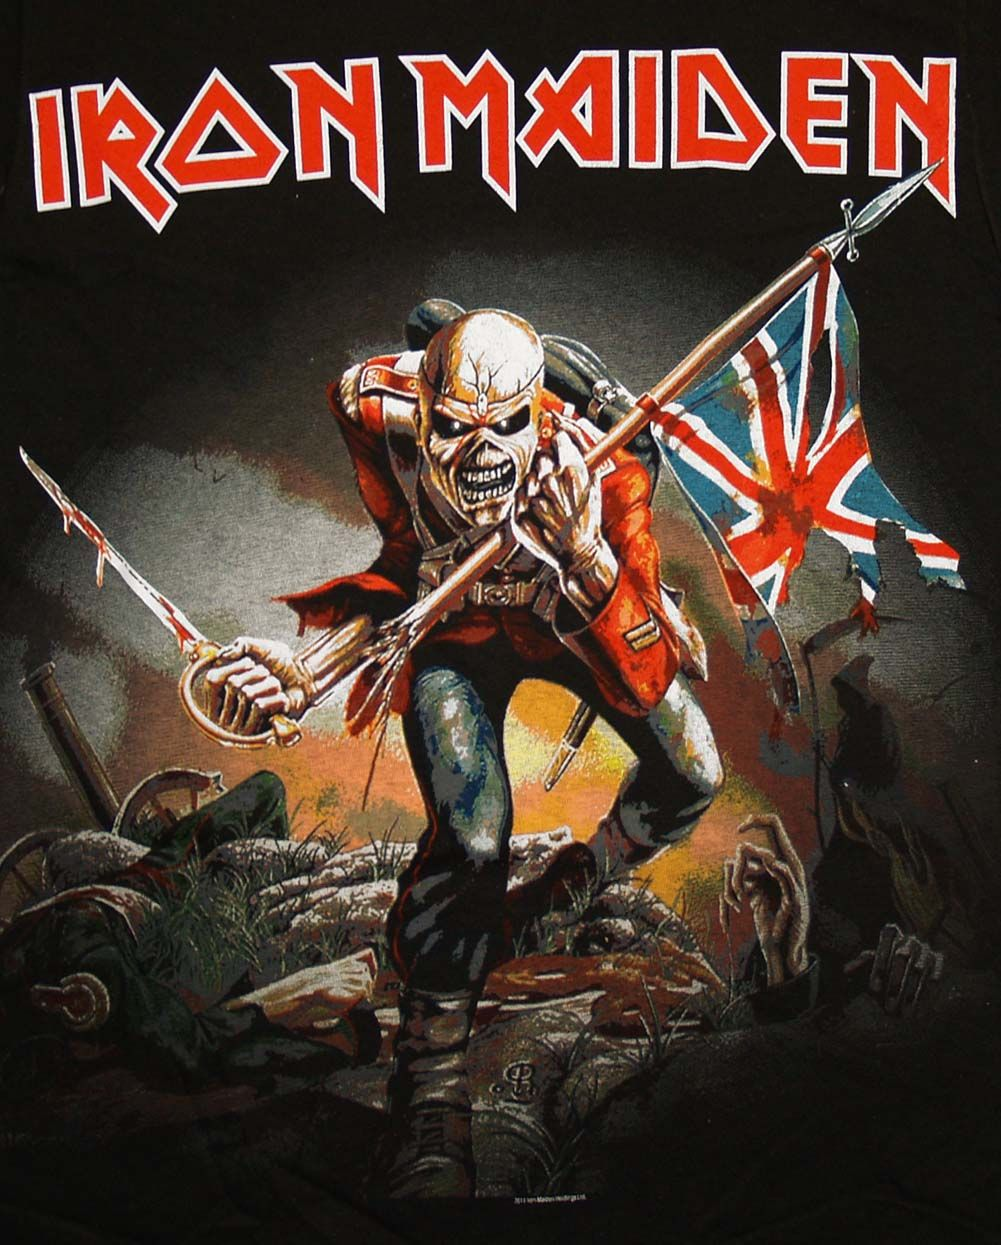 Iron Maiden The Trooper Wallpaper Images Harmony Wallpaper 1080p